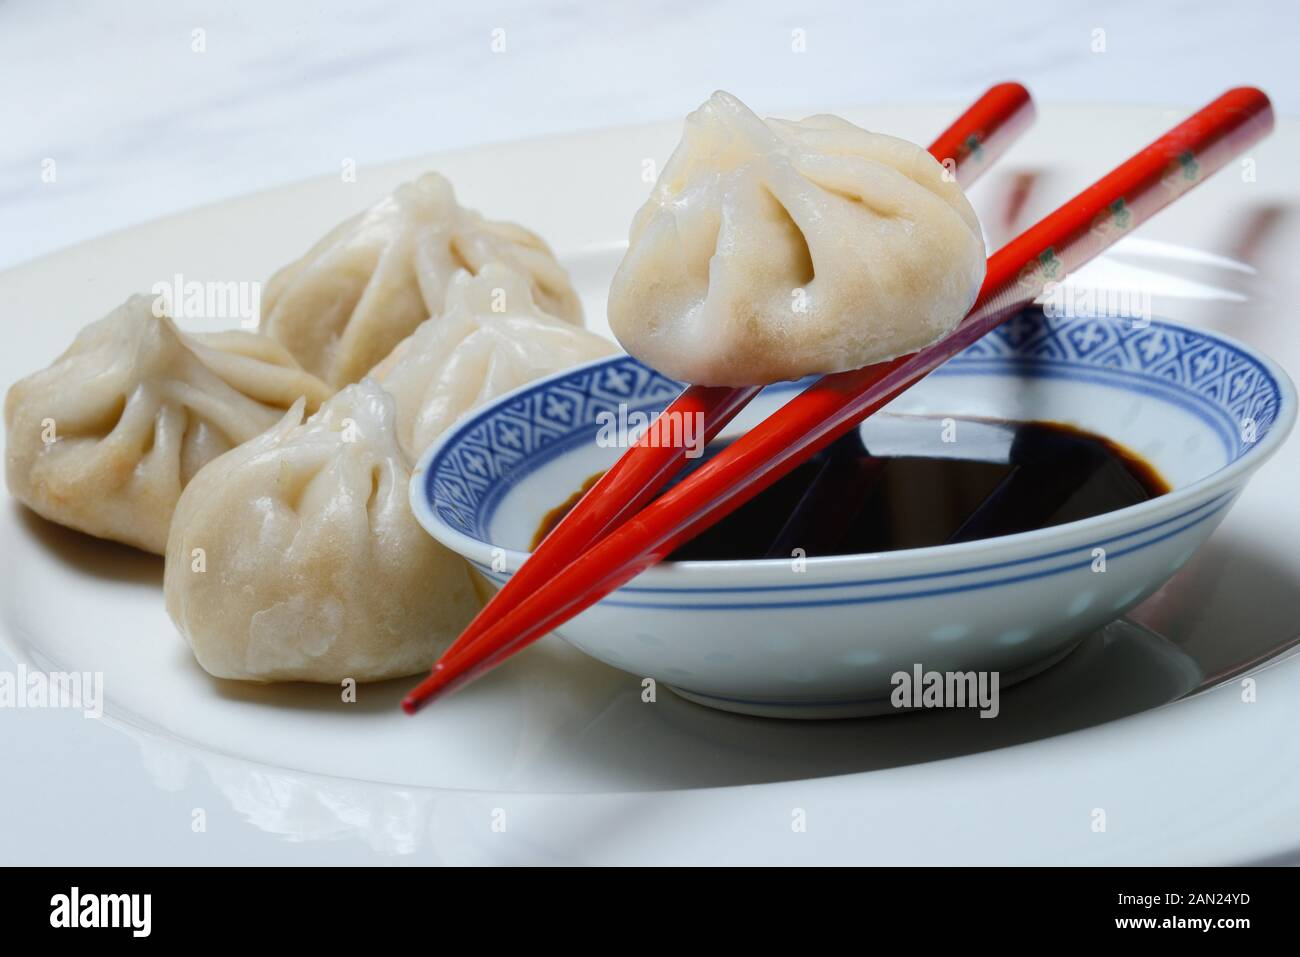 Dim Sum, filled dumplings and bowl with soy sauce, red chopsticks, Germany Stock Photo